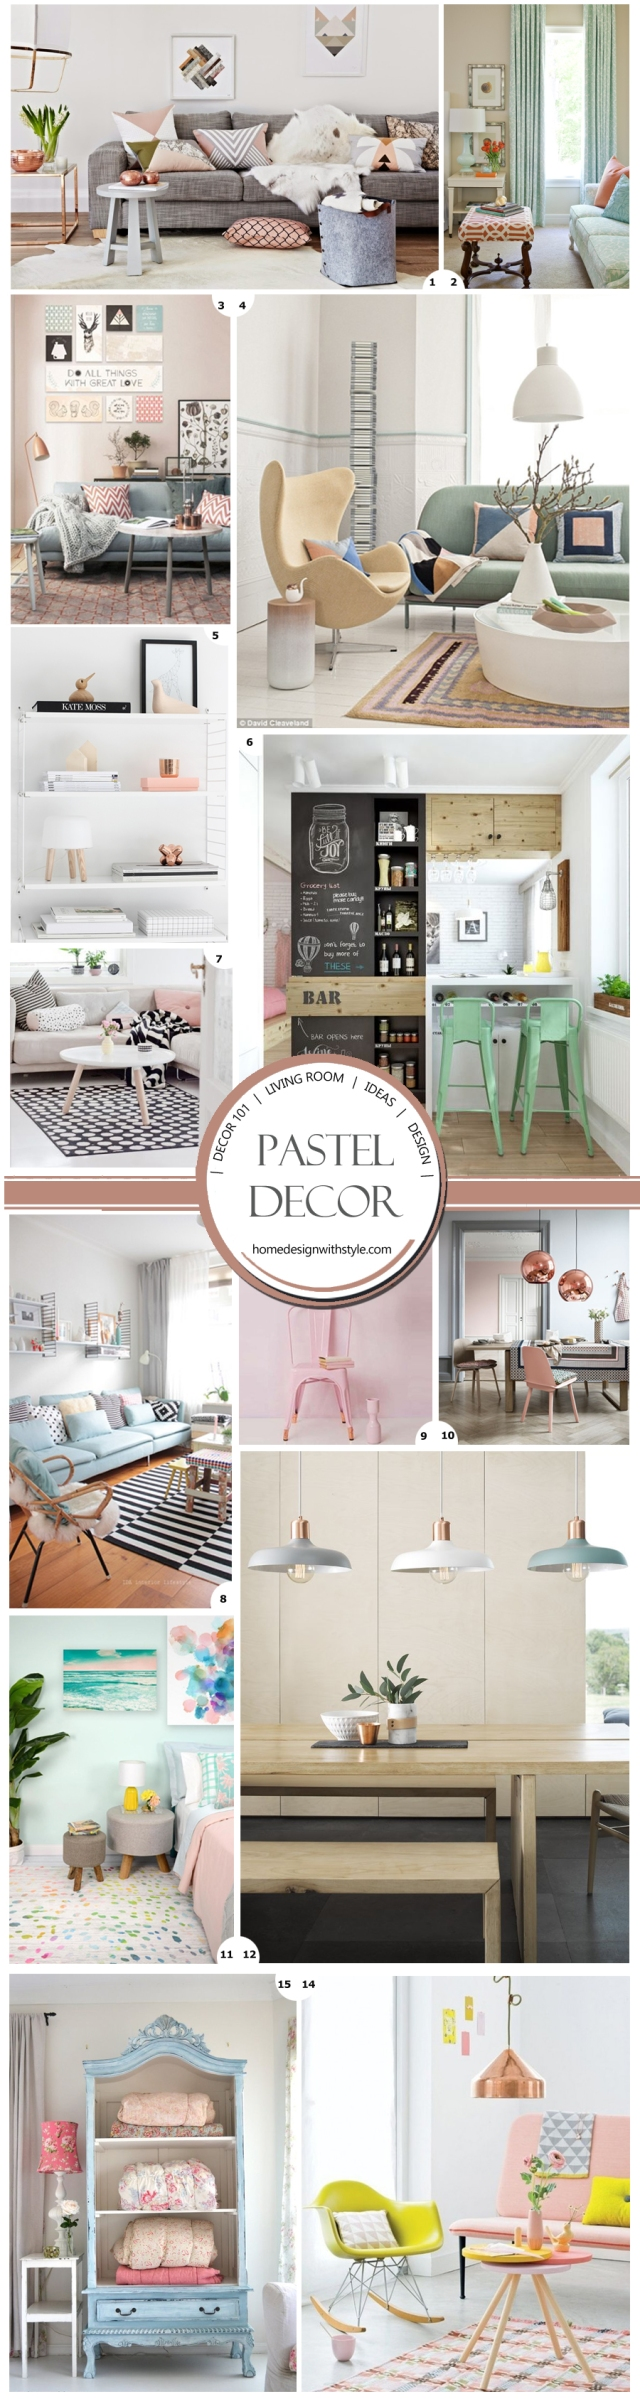 DECOR 101: Pastel Living Room | Design Your Home With Style